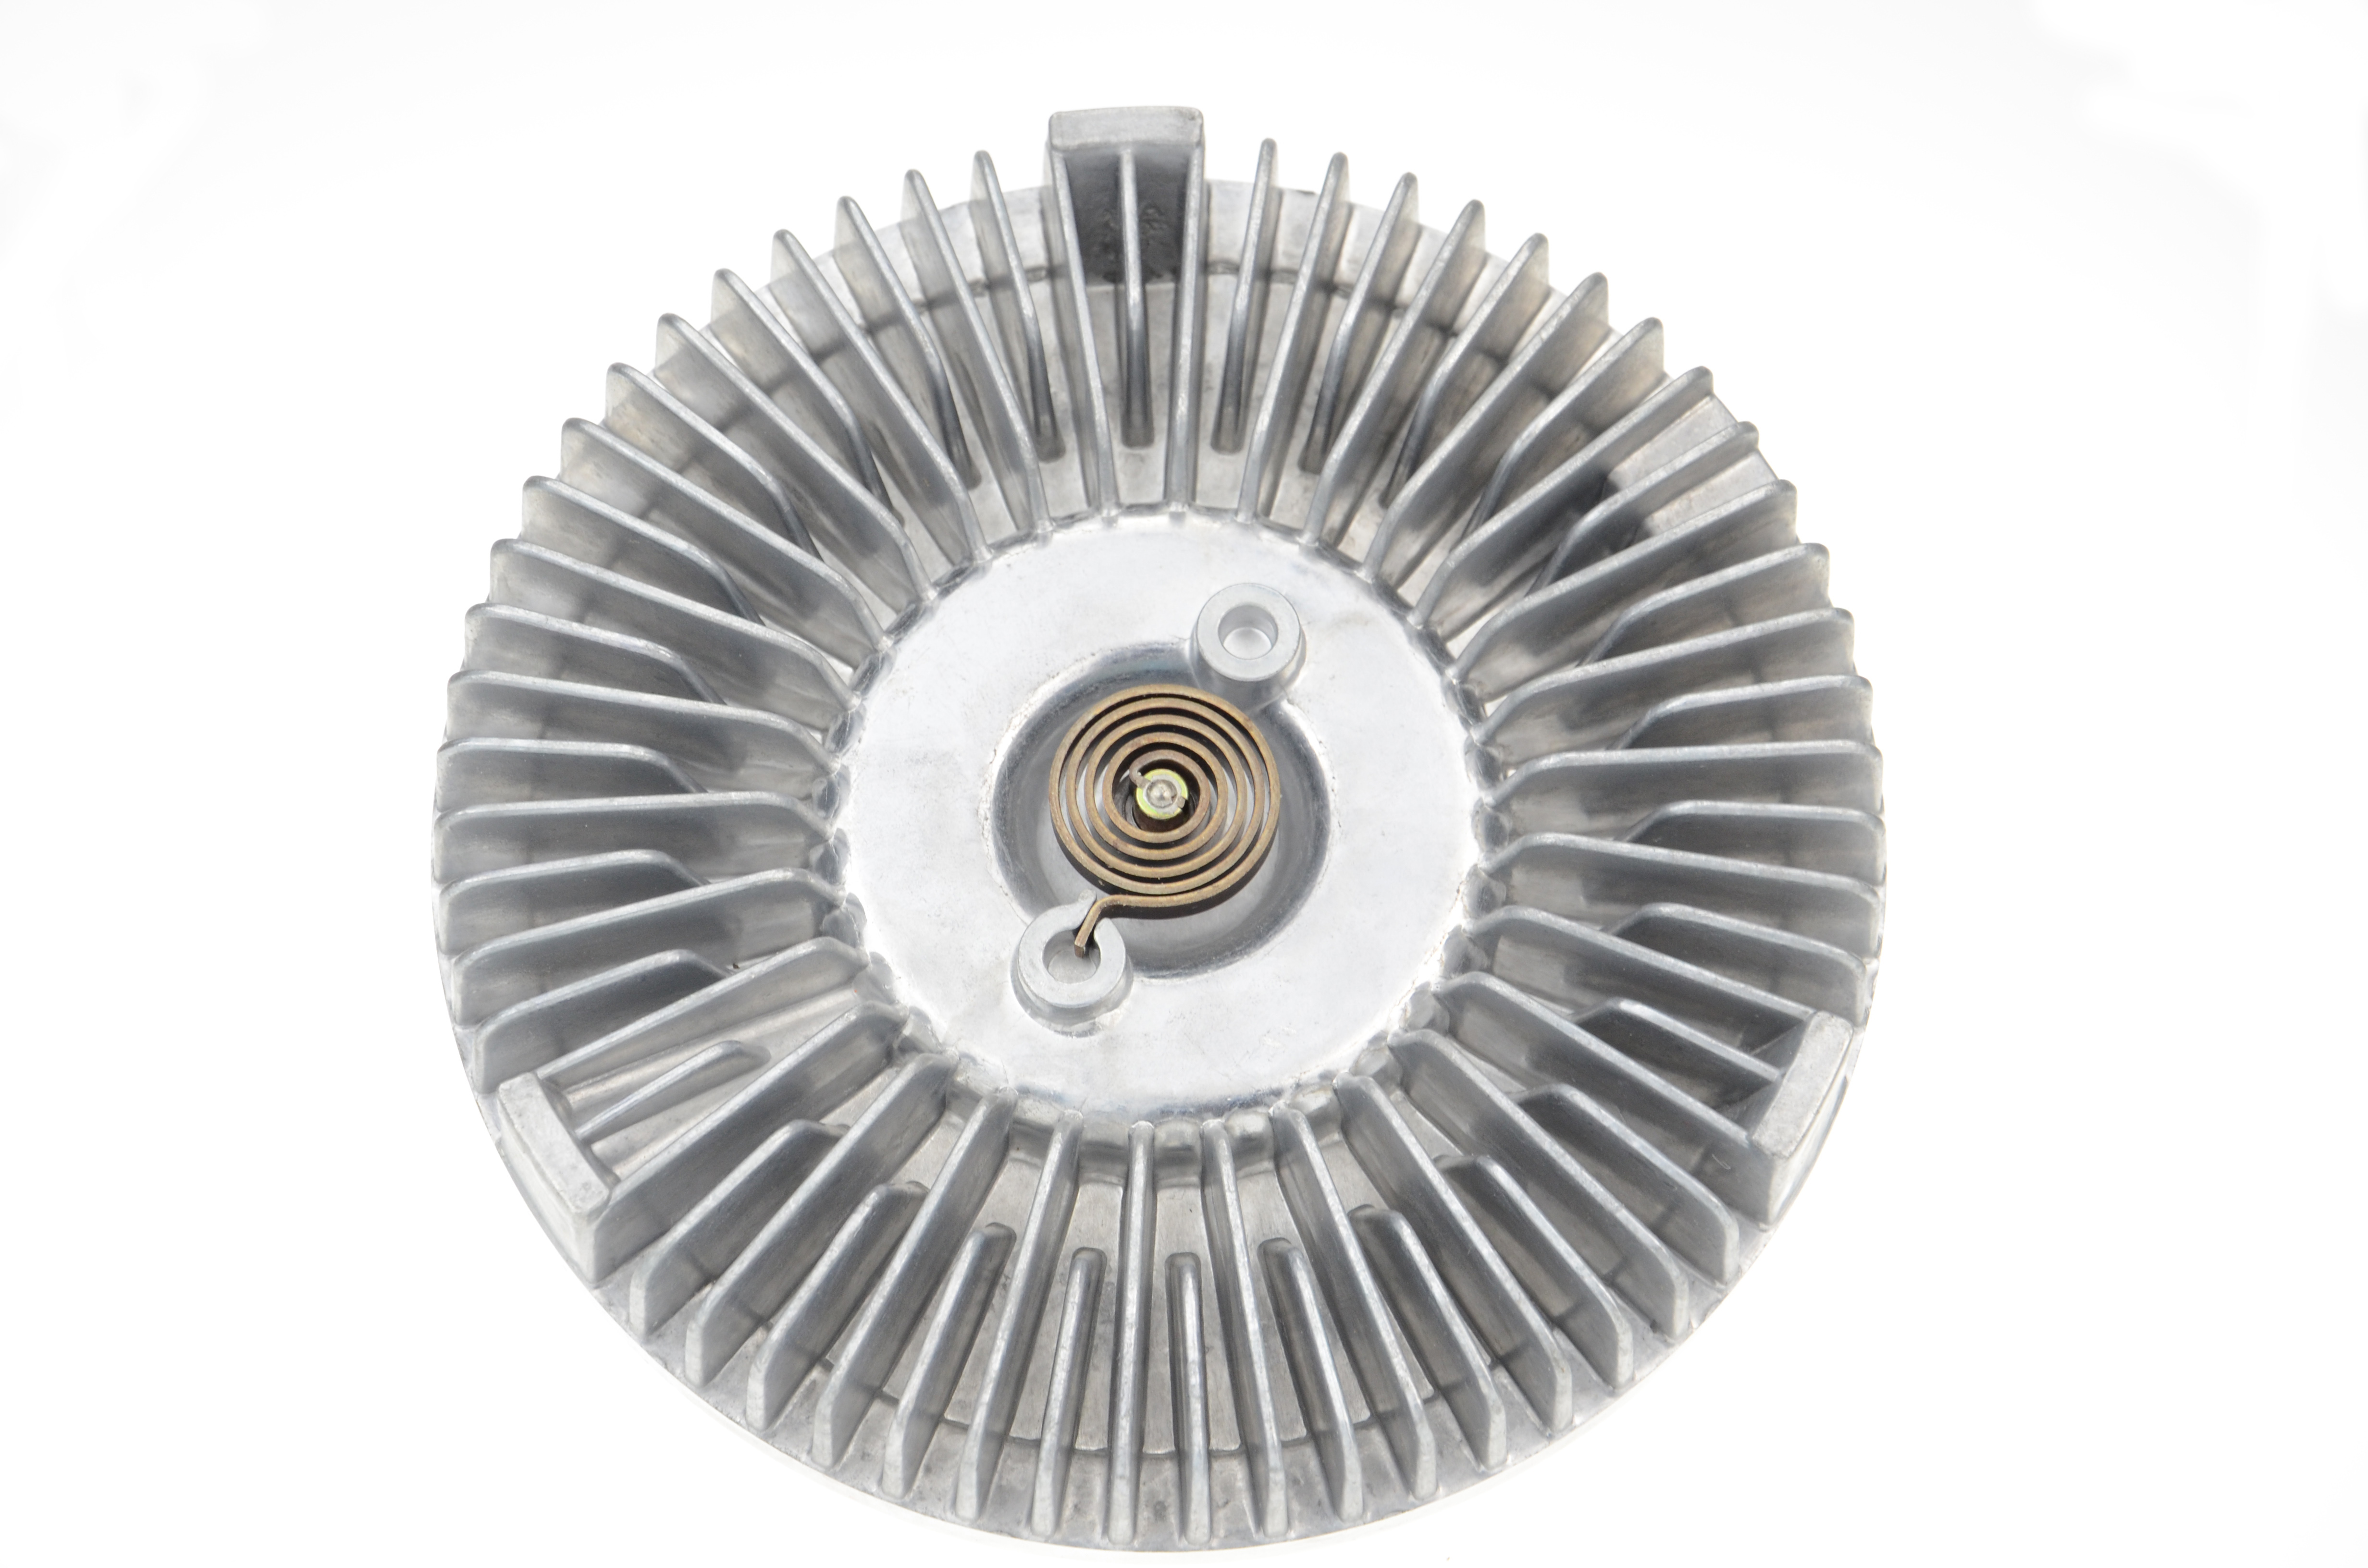 small resolution of engine cooling fan clutch fit jeep grand cherokee zj 93 98 i6 4 0l ohv 52027823 one year quality warranty 30 days free return in fans kits from